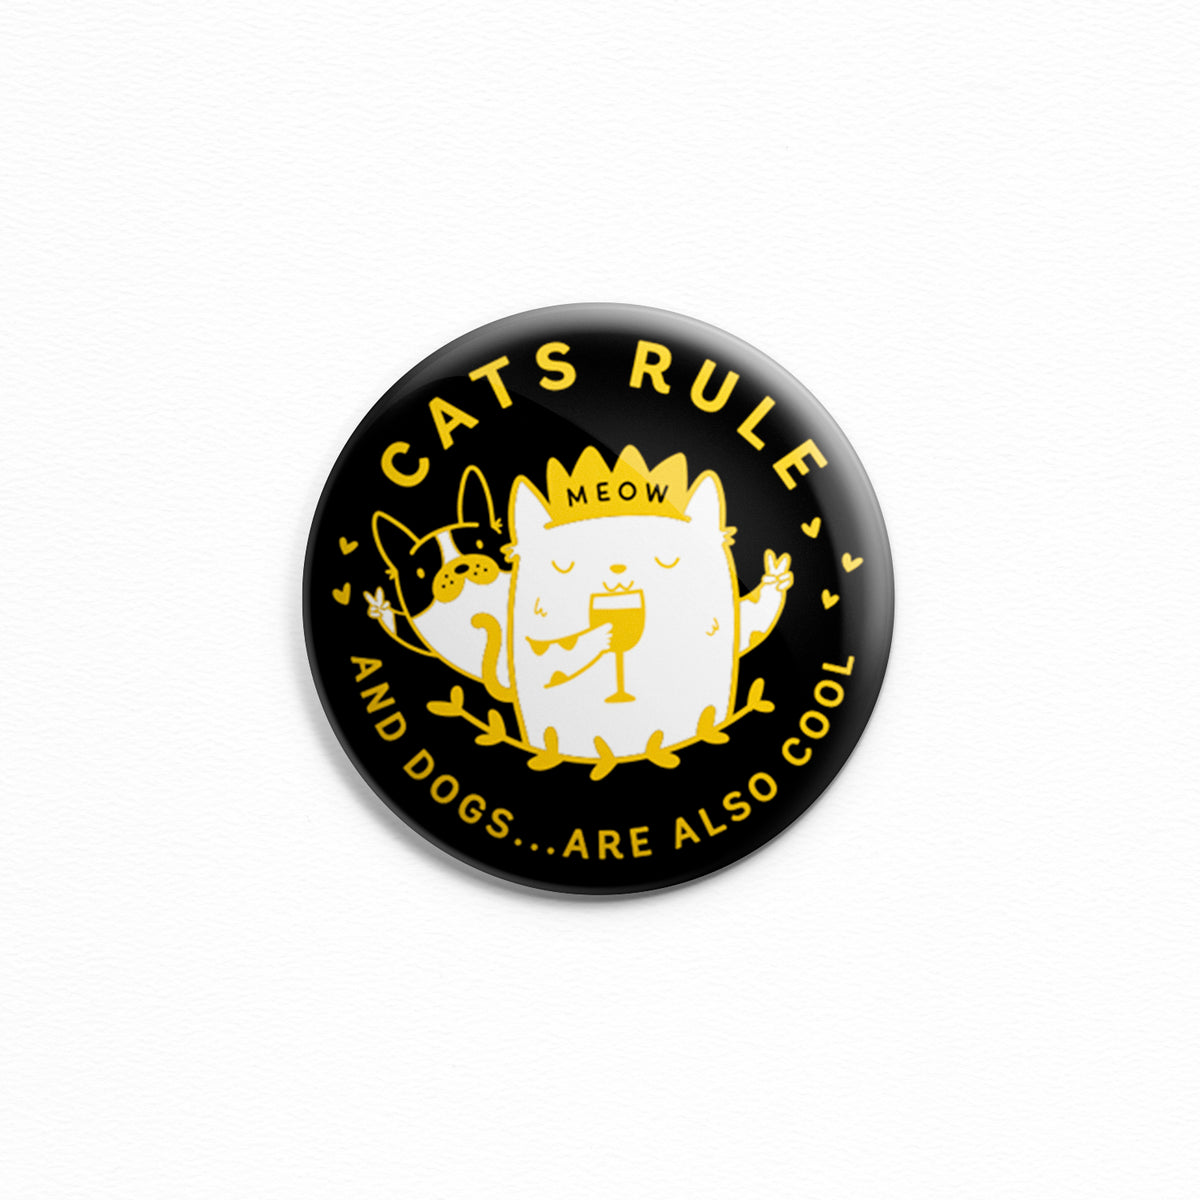 Cats Rule - Button or magnet with an illustration of a cat wearing a crown and drinking wine in front of a dog.